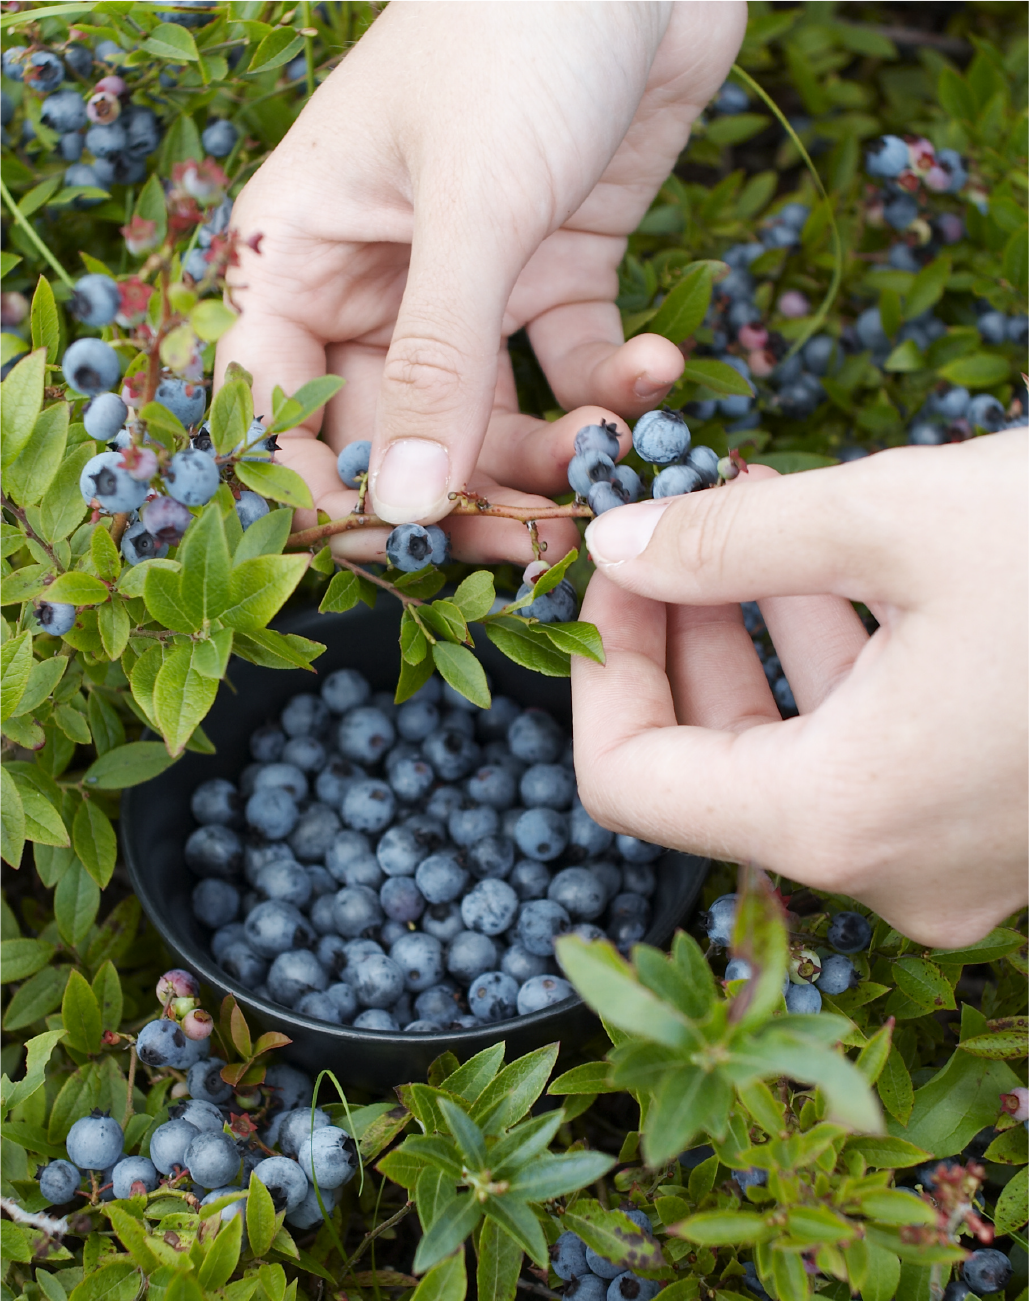 Up close view of two clean hands picking blueberries off a bush